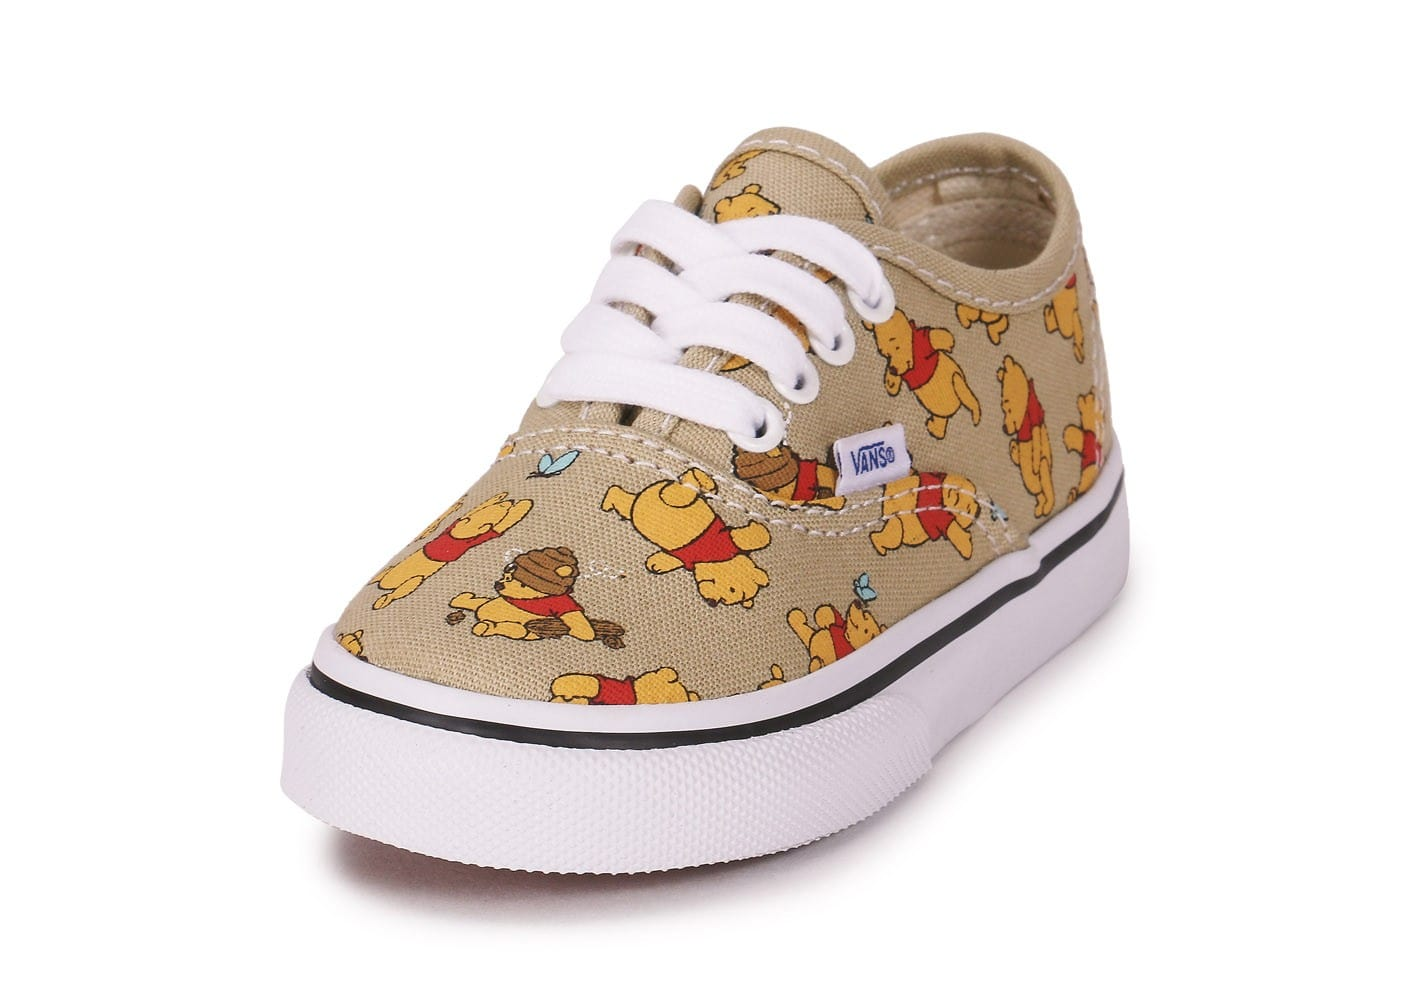 Vans Authentic Disney Winnie L'ourson Chaussures